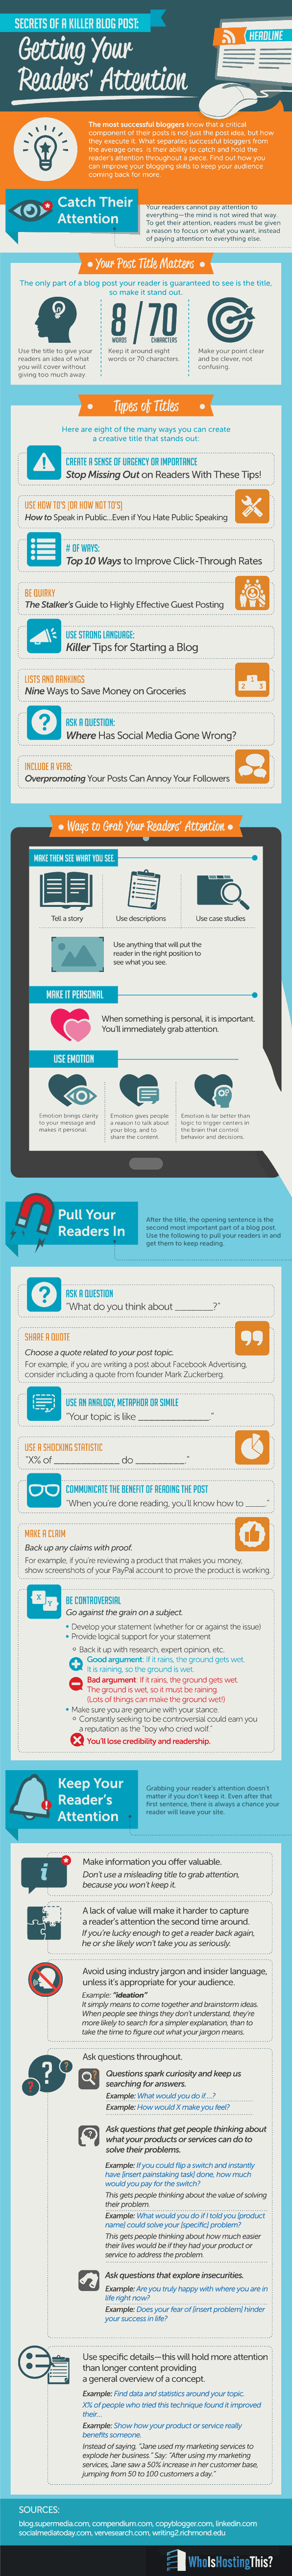 The Secrets to Writing an Attention-Grabbing Blog Post [Infographic]